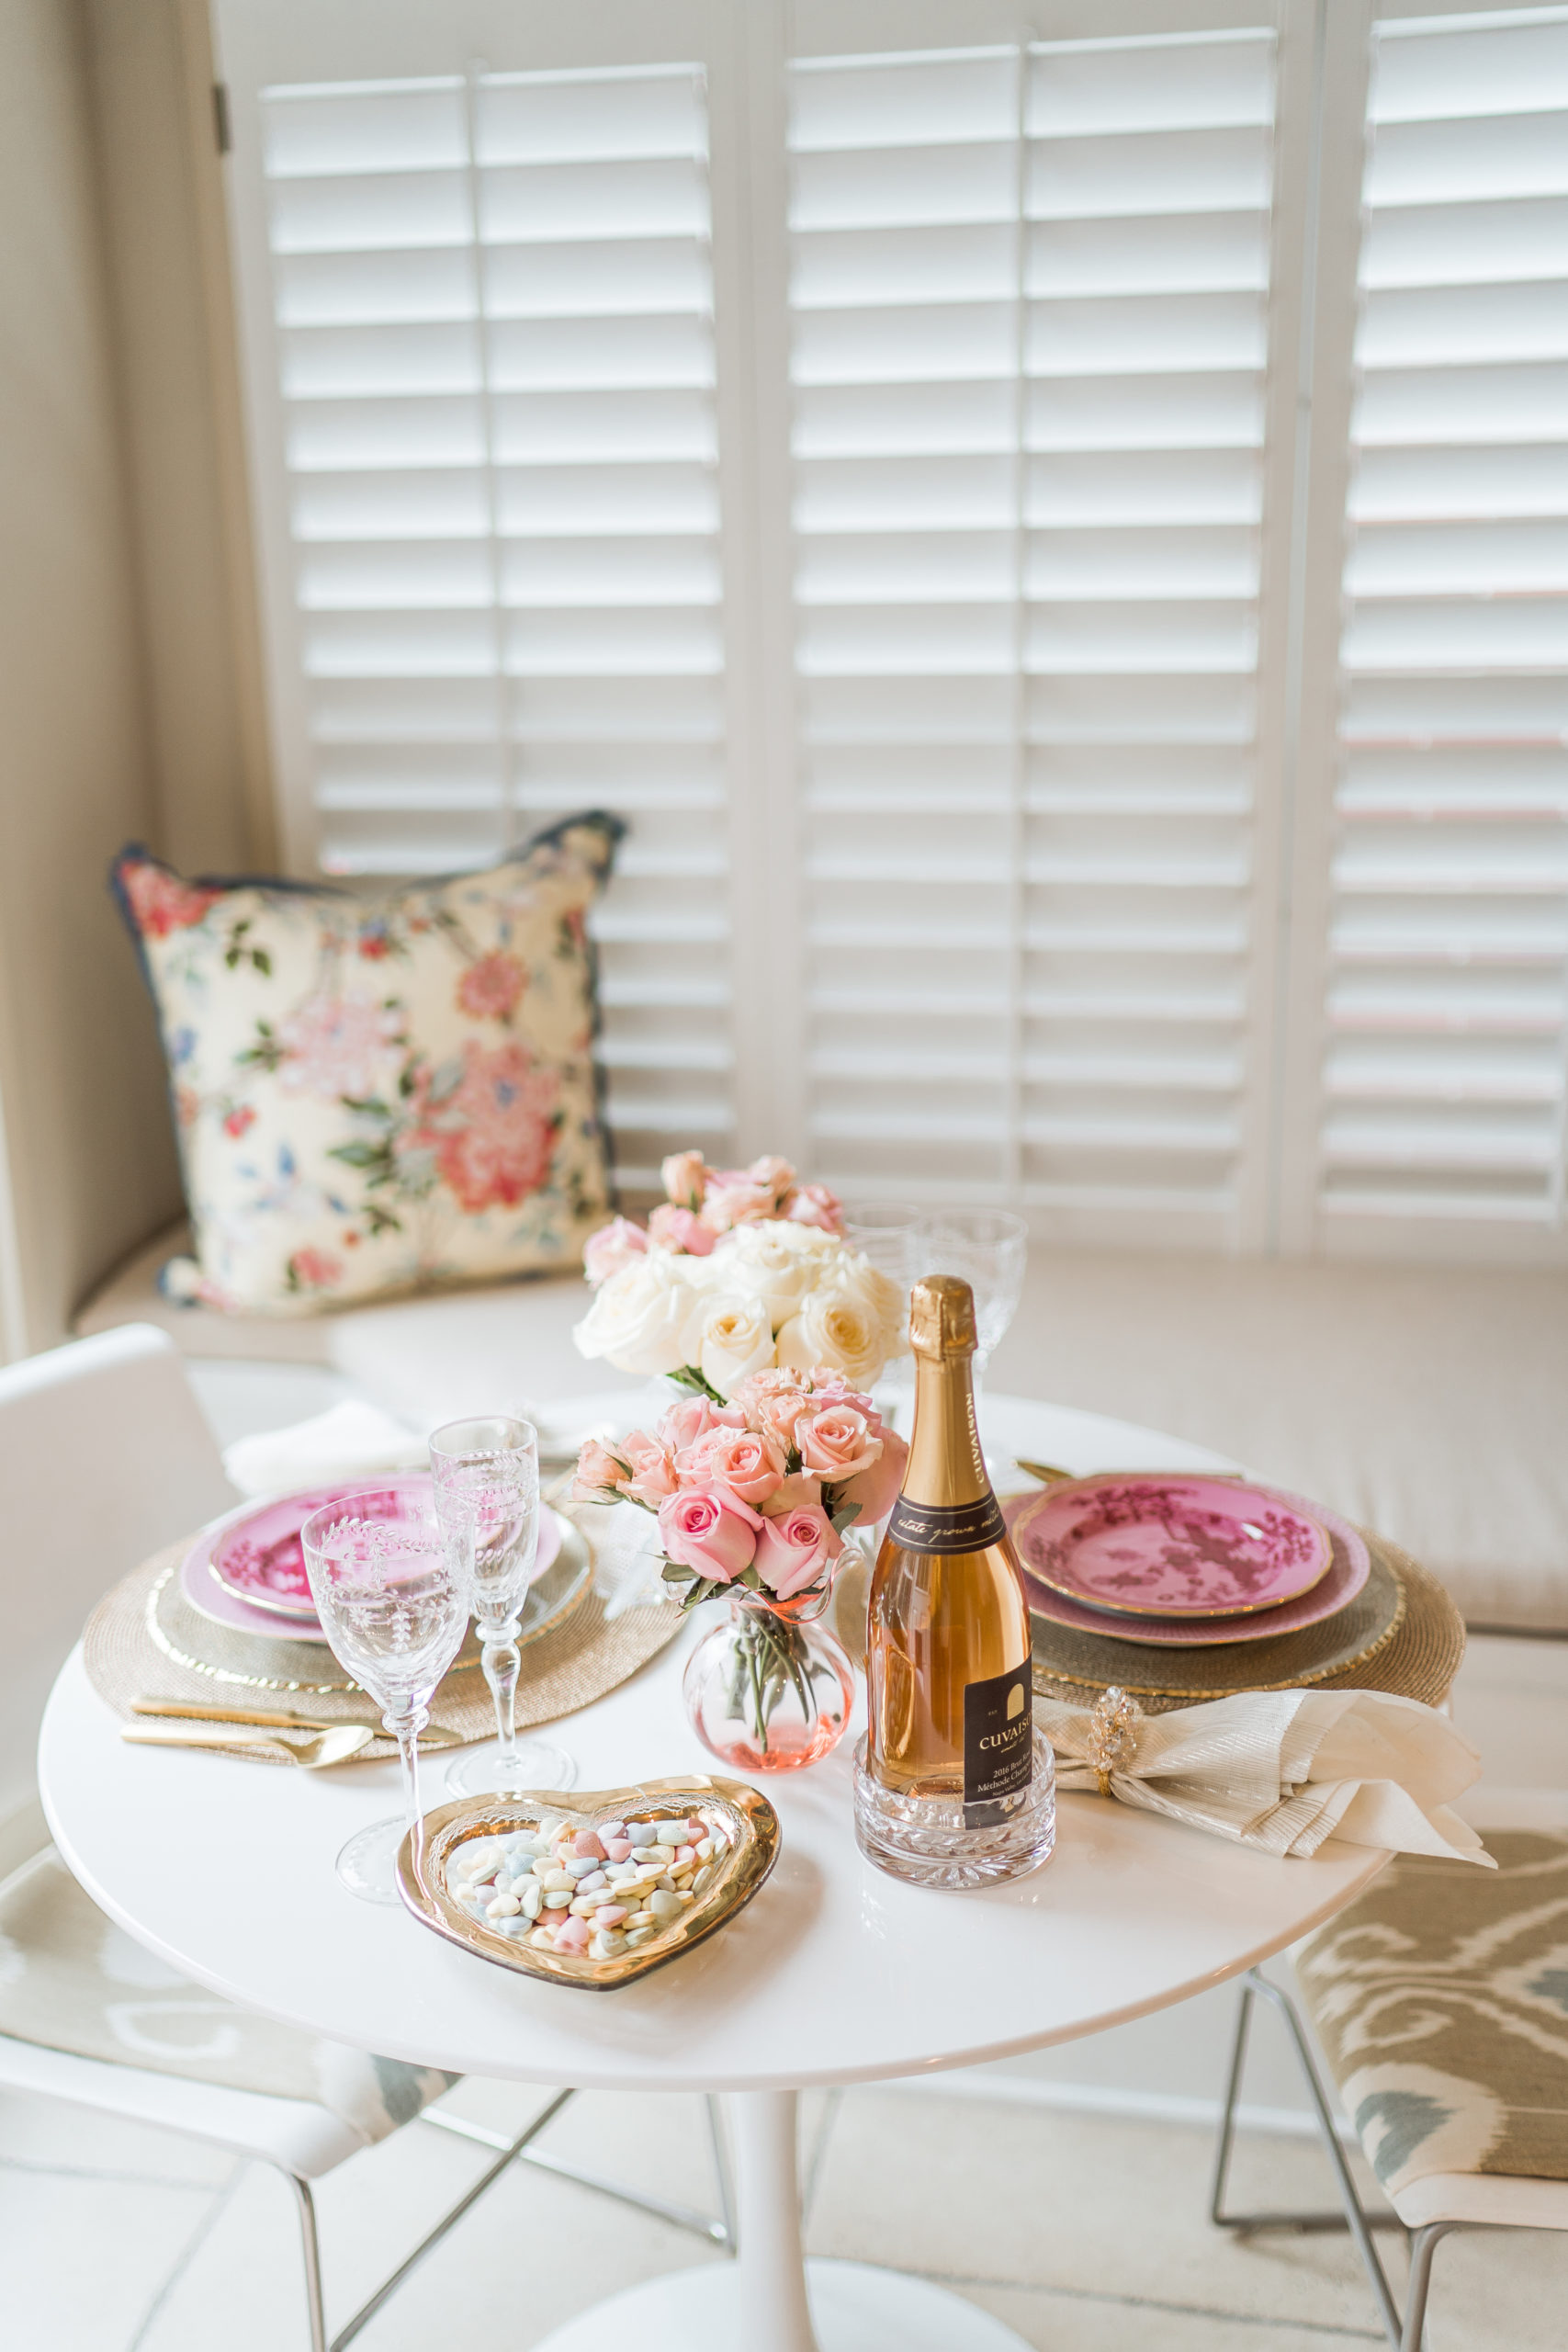 Intimate Valentine's Day tablescape